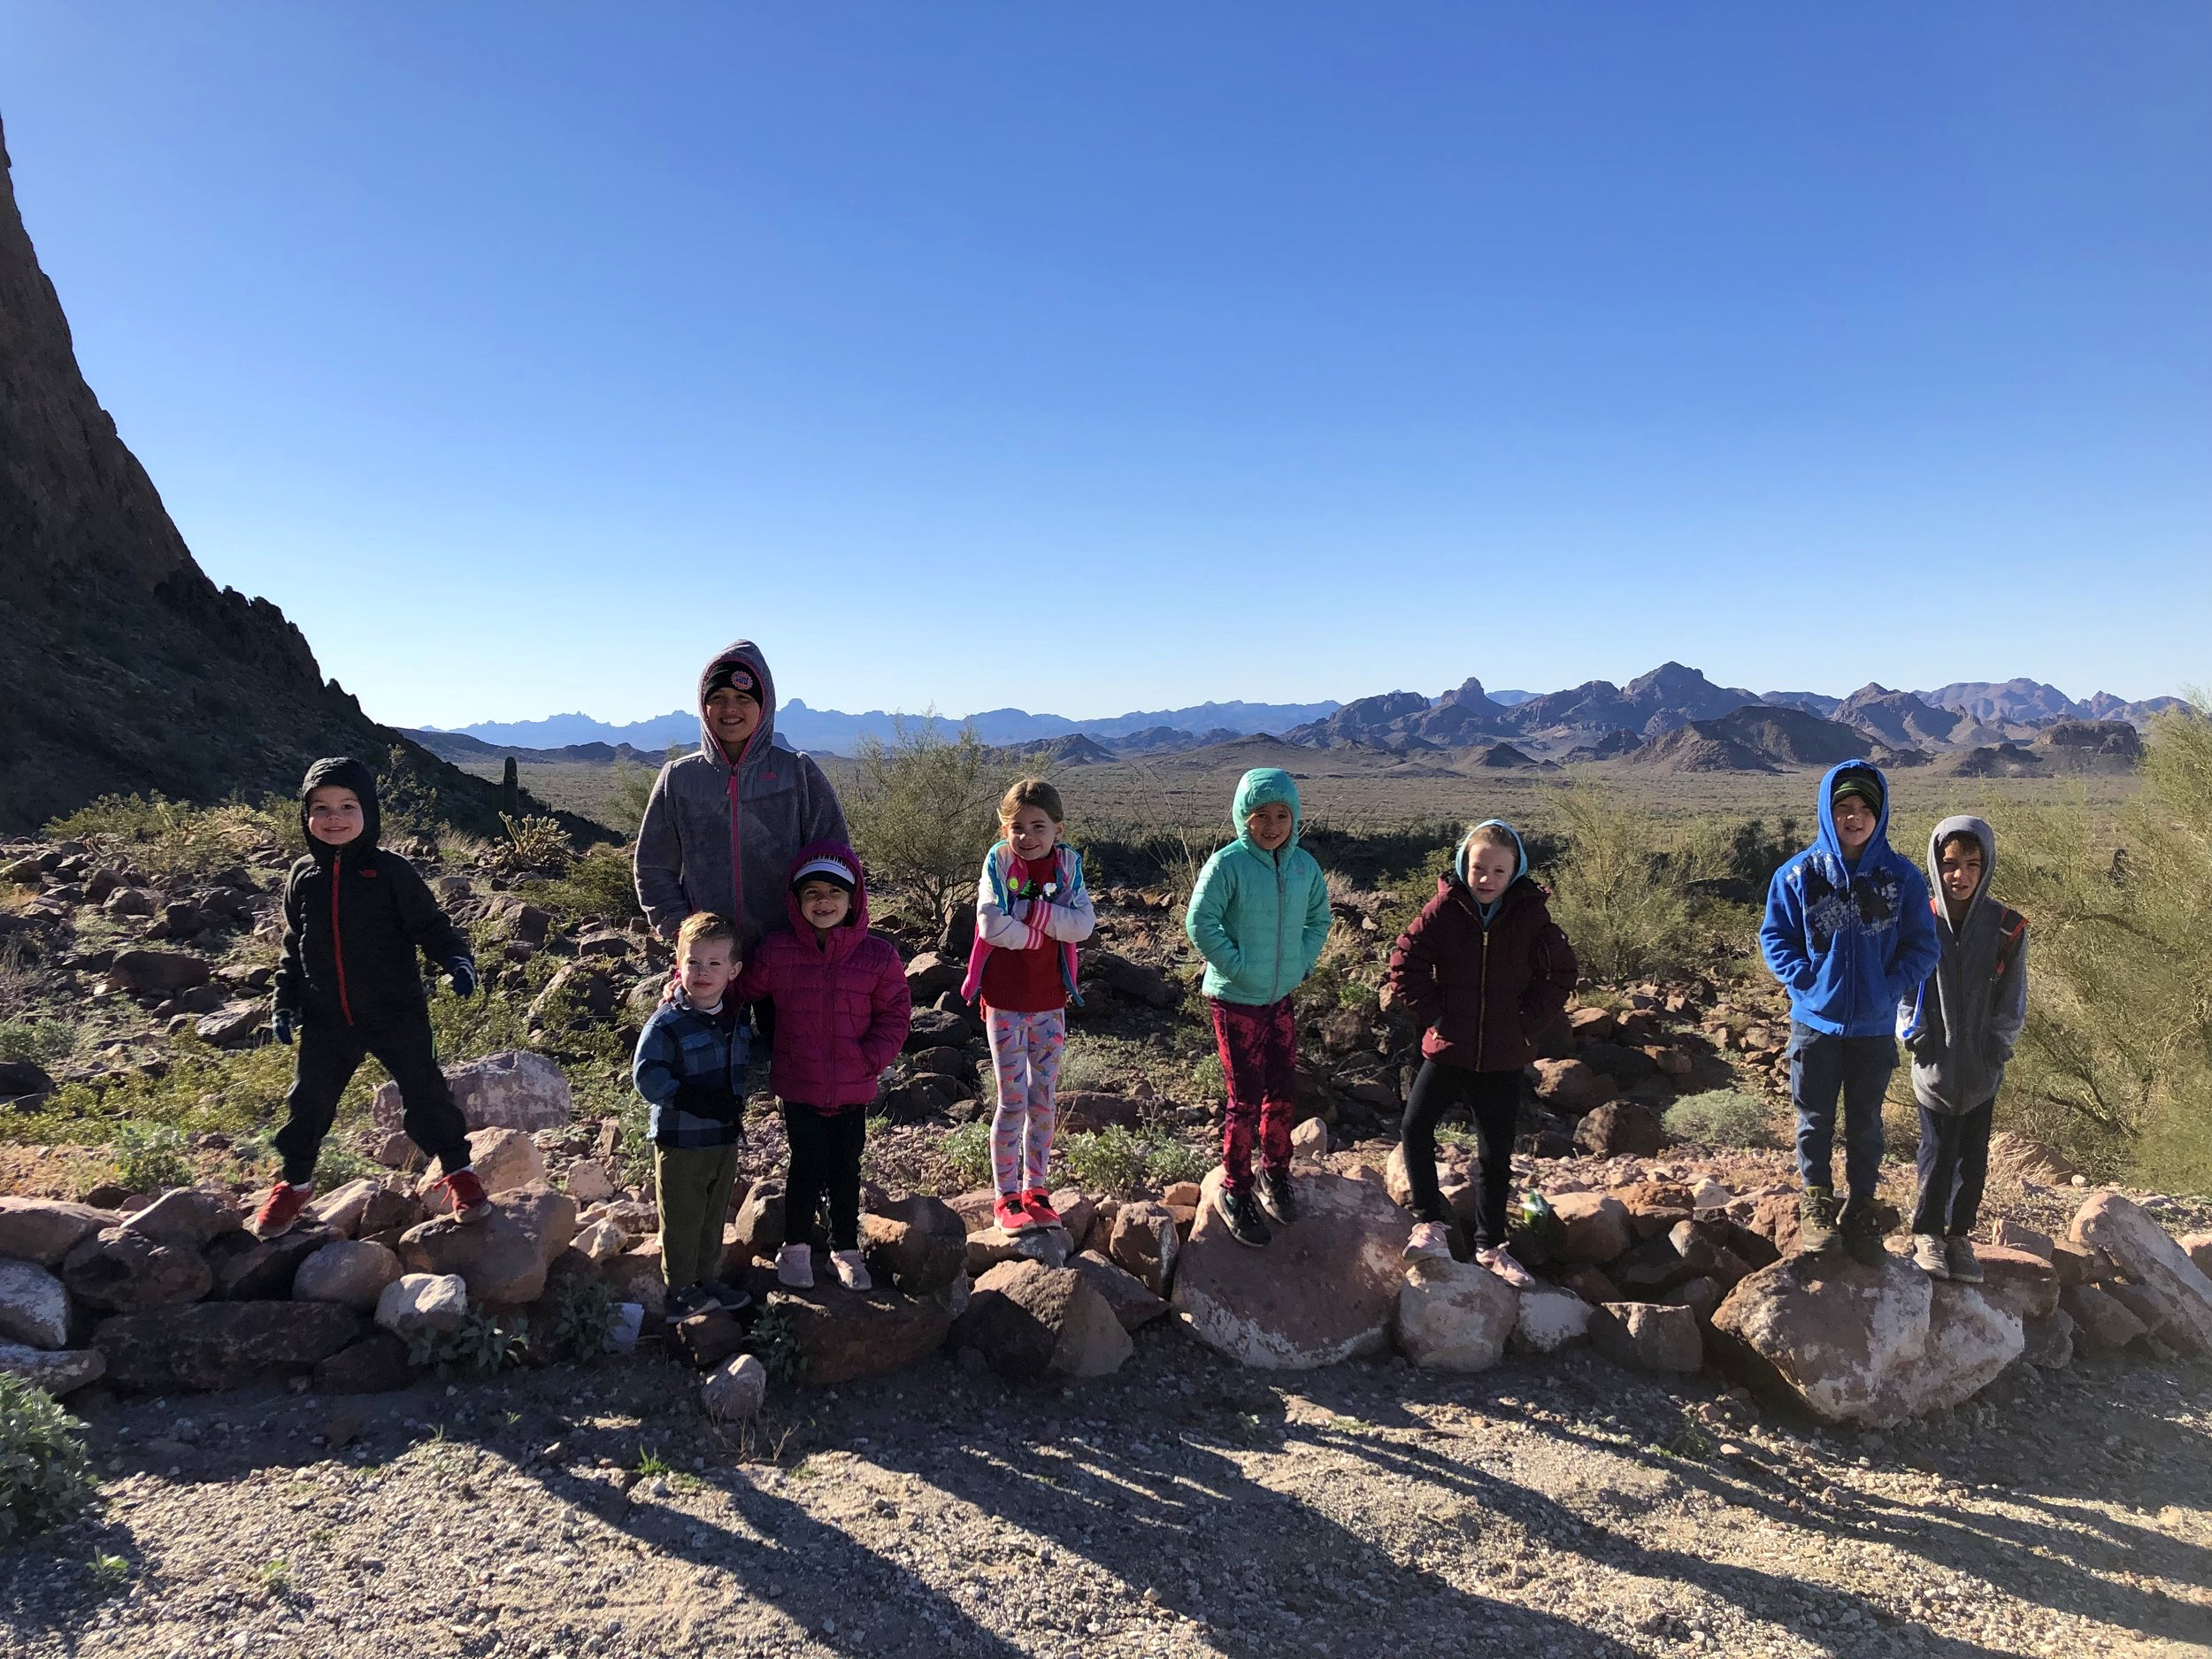 The little hikers did so well, even in with the chilly desert temperatures.